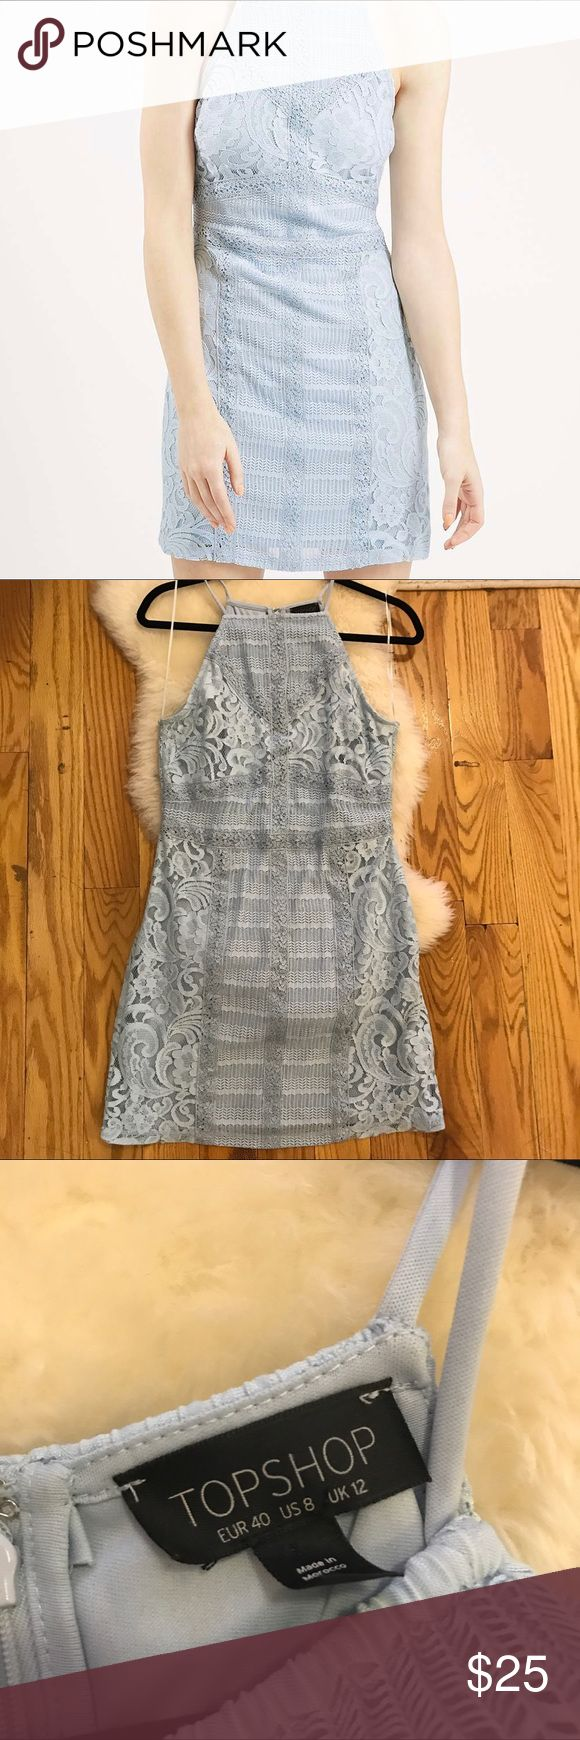 Topshop light blue lace bodycon dress (size 8) Pale pastel blue, lace with mesh and crochet details from Topshop. Worn a few times but no visible wear/tear. Hits mid thigh. Perfect for night out with nude heel or daytime with a cardigan Topshop Dresses Mini